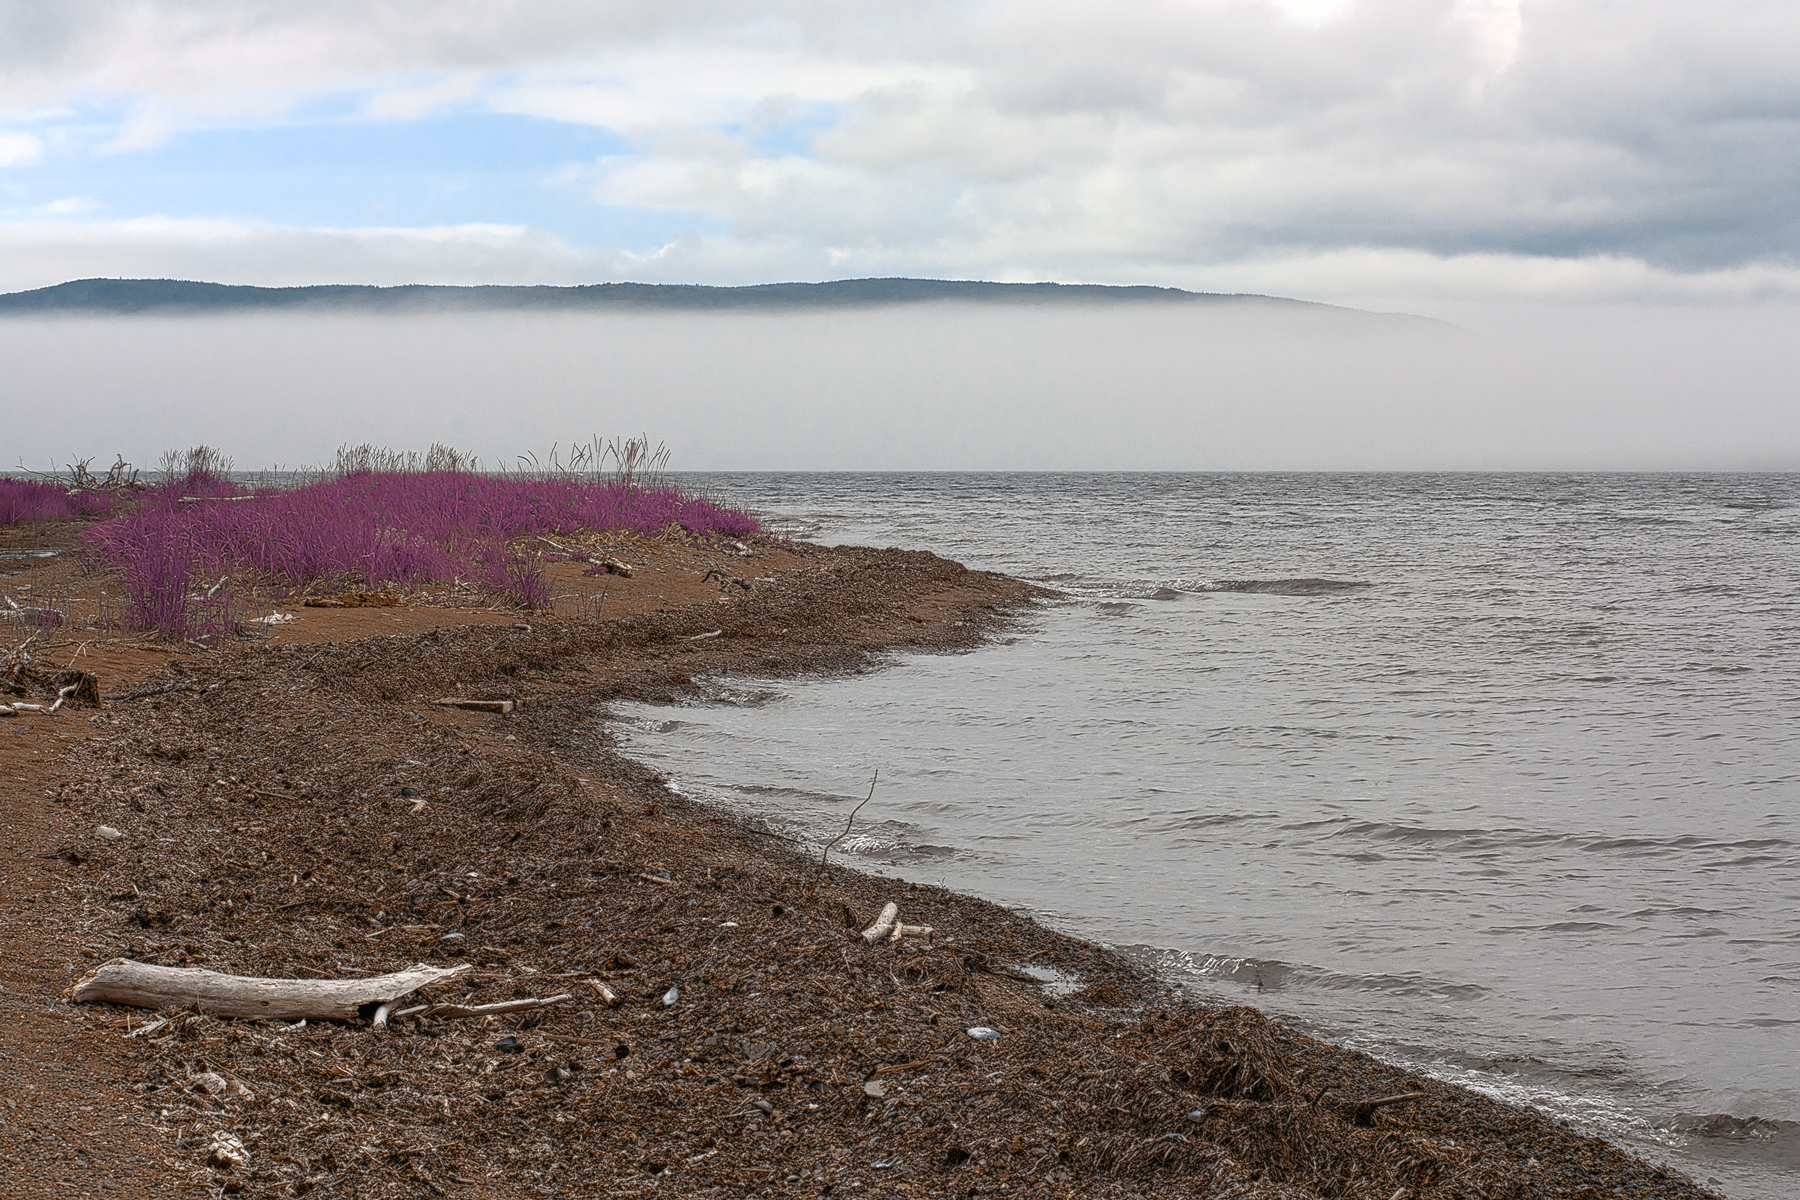 Misty cabot trail scenery - lavender pur photo